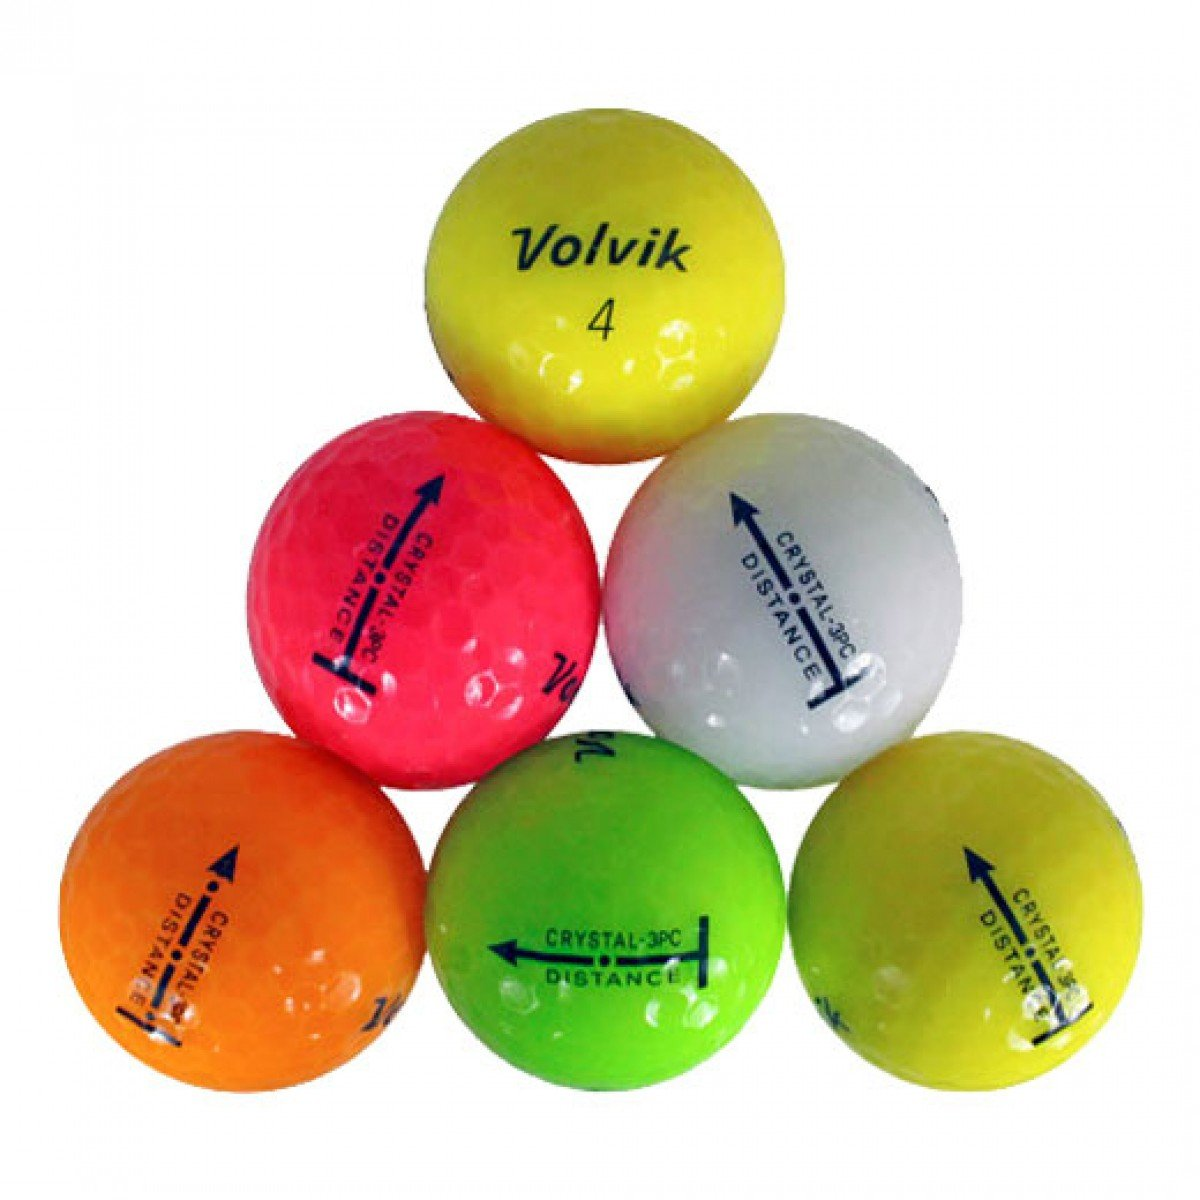 72 Mint Volvik Crystal Mix Used Golf Balls AAAAA - 6 Dozen